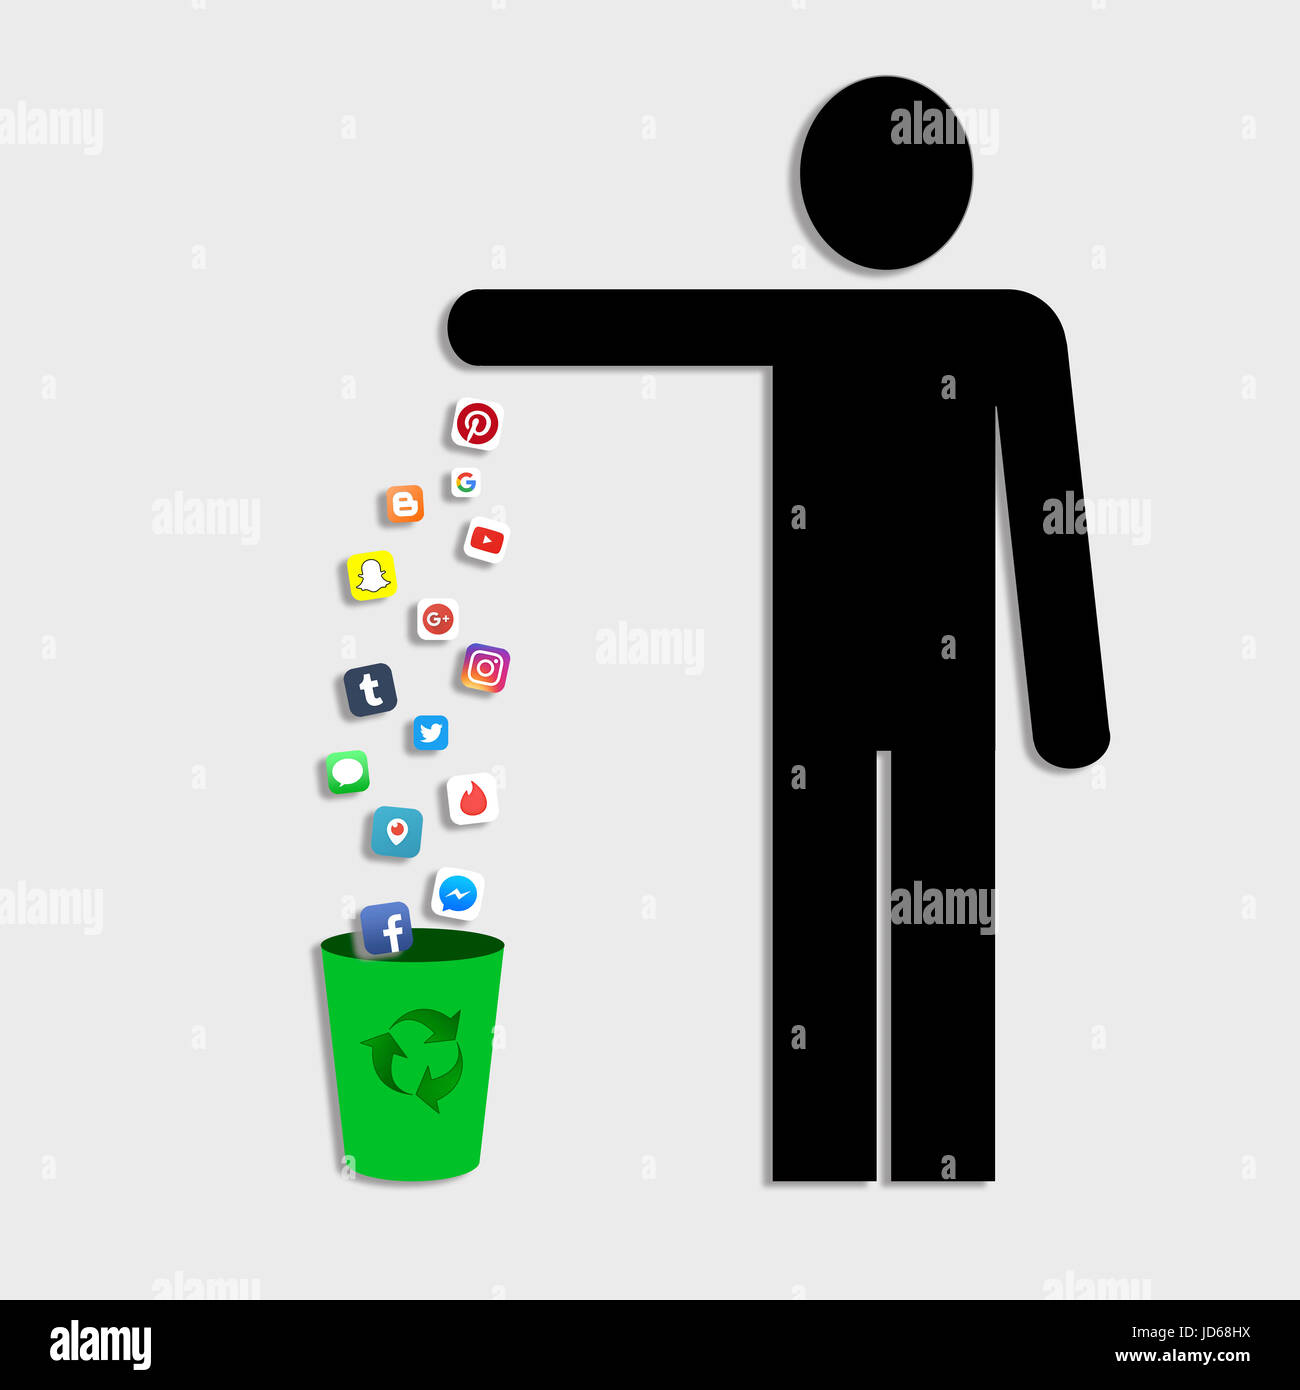 Man throwing social media applications like pinterest youtube man throwing social media applications like pinterest youtube messenger facebook to a trash bin concept of decluttering the digital life biocorpaavc Gallery